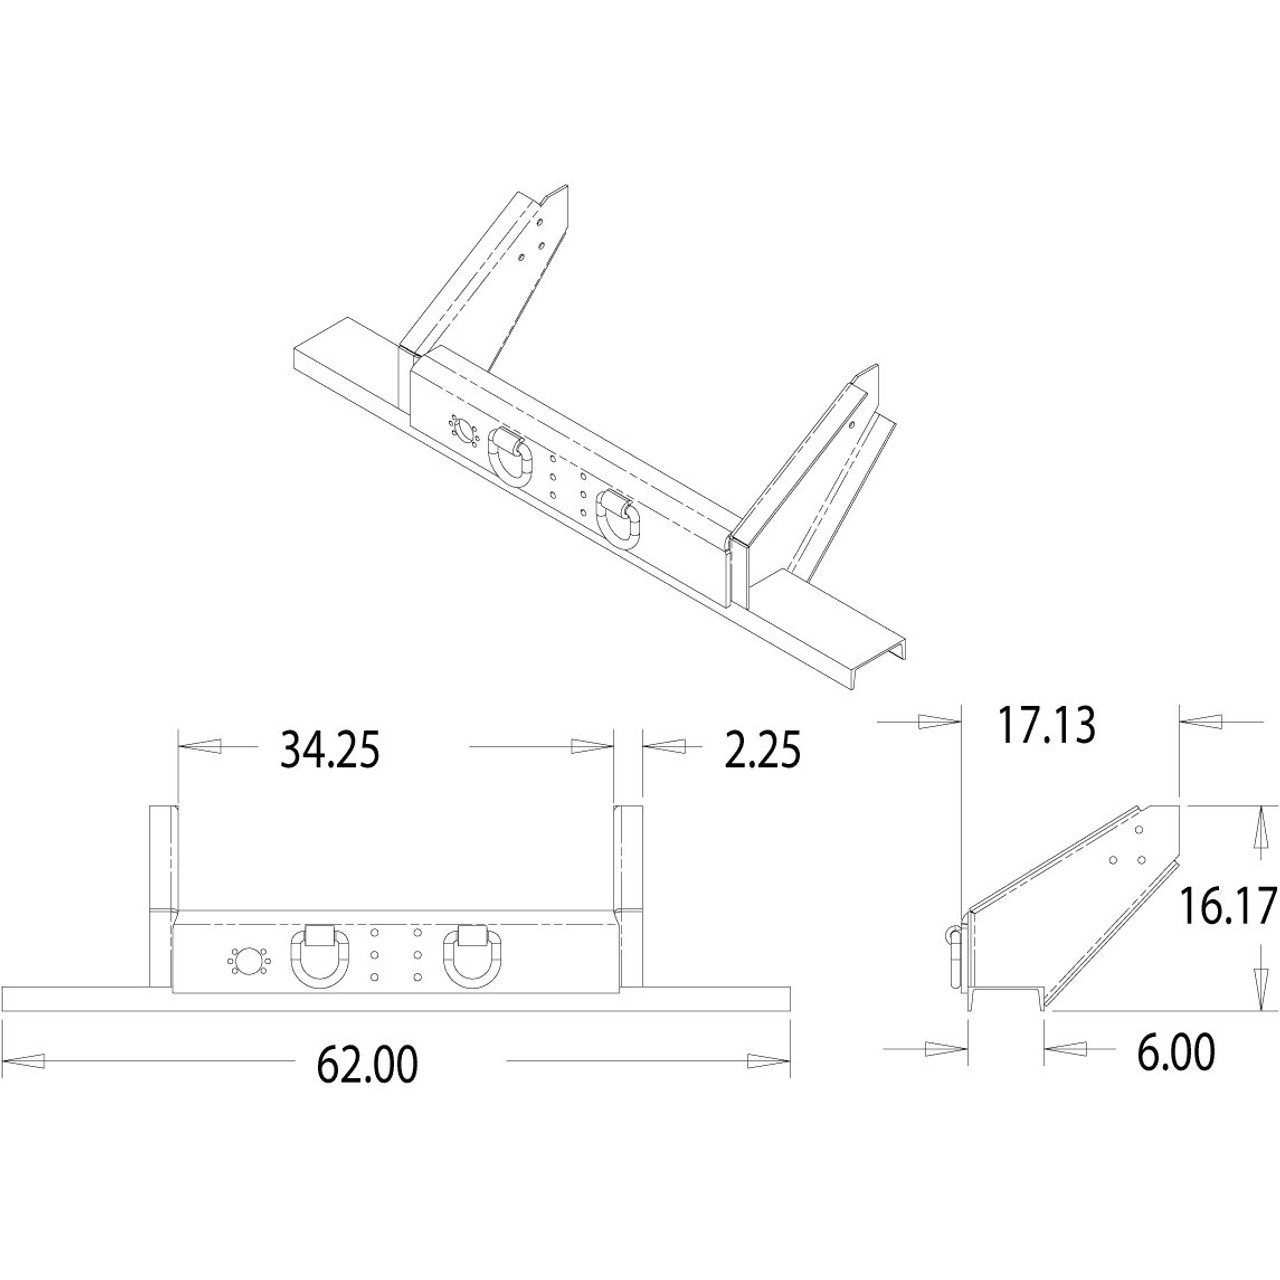 1809050 Flatbed Dump Hitch Bumper With Pintle Hook Mounting Ford F550 Truck Wiring Diagram Holes